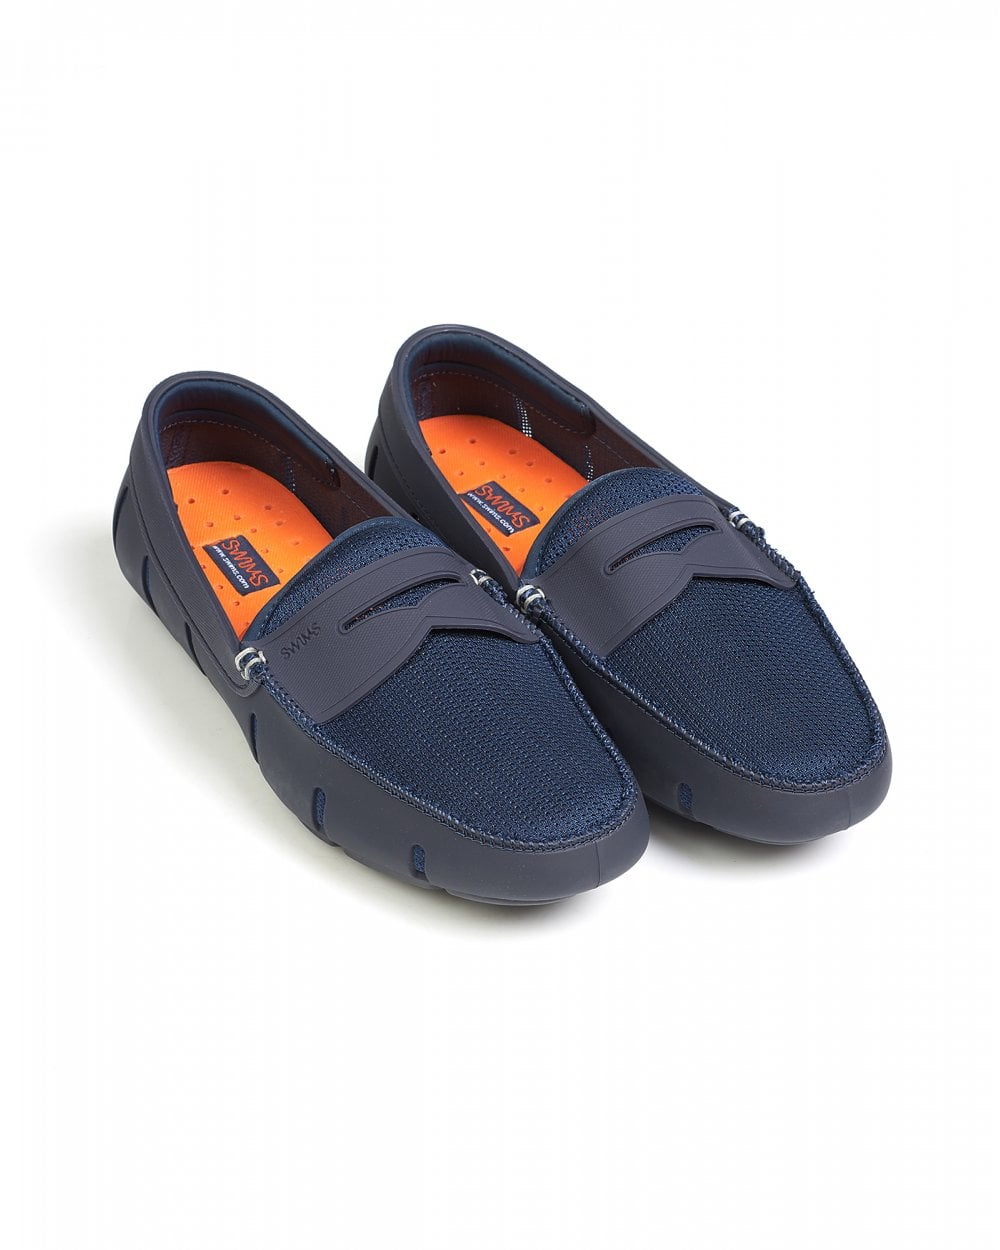 132a0807e1e Swims Mens Navy Shoes